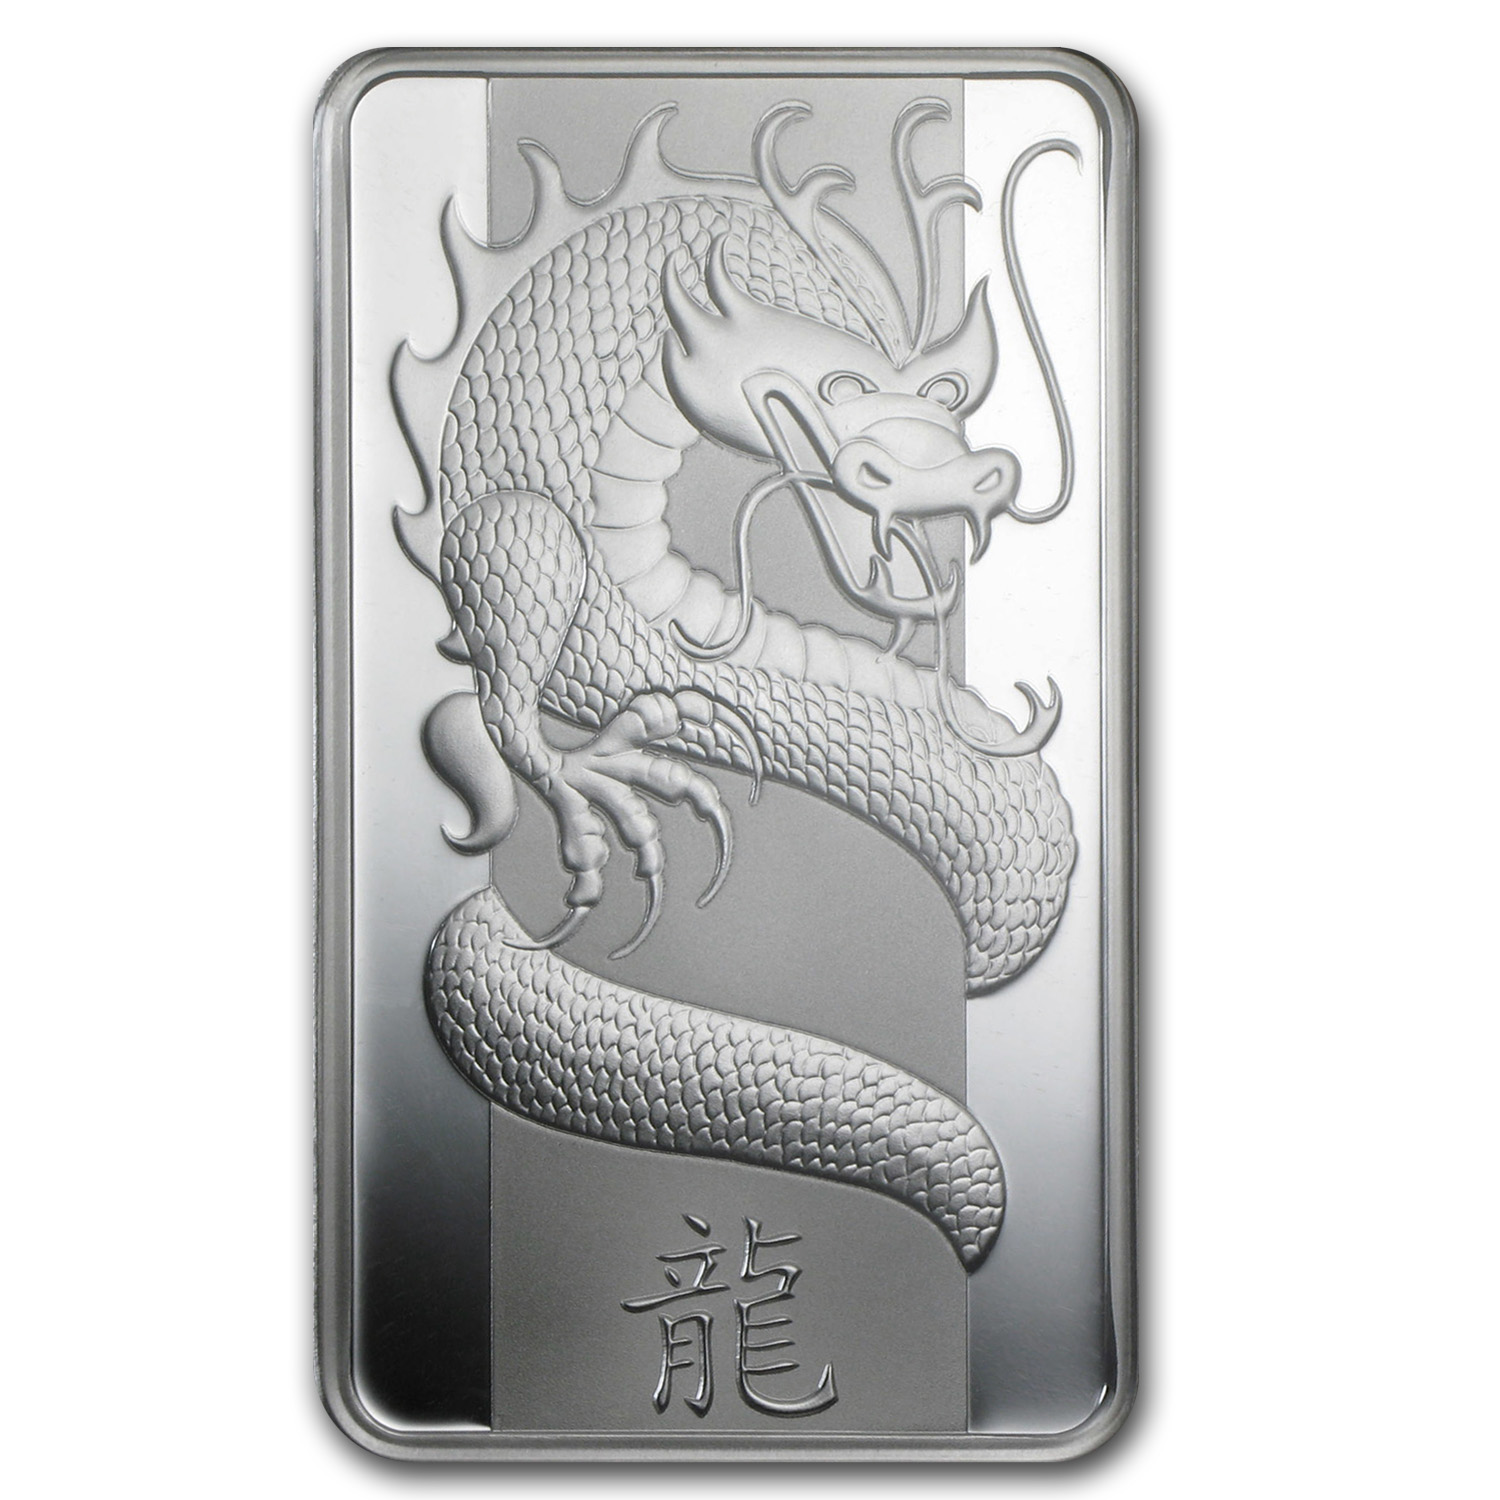 100 gram Silver Bars - Pamp Suisse (Year of the Dragon)